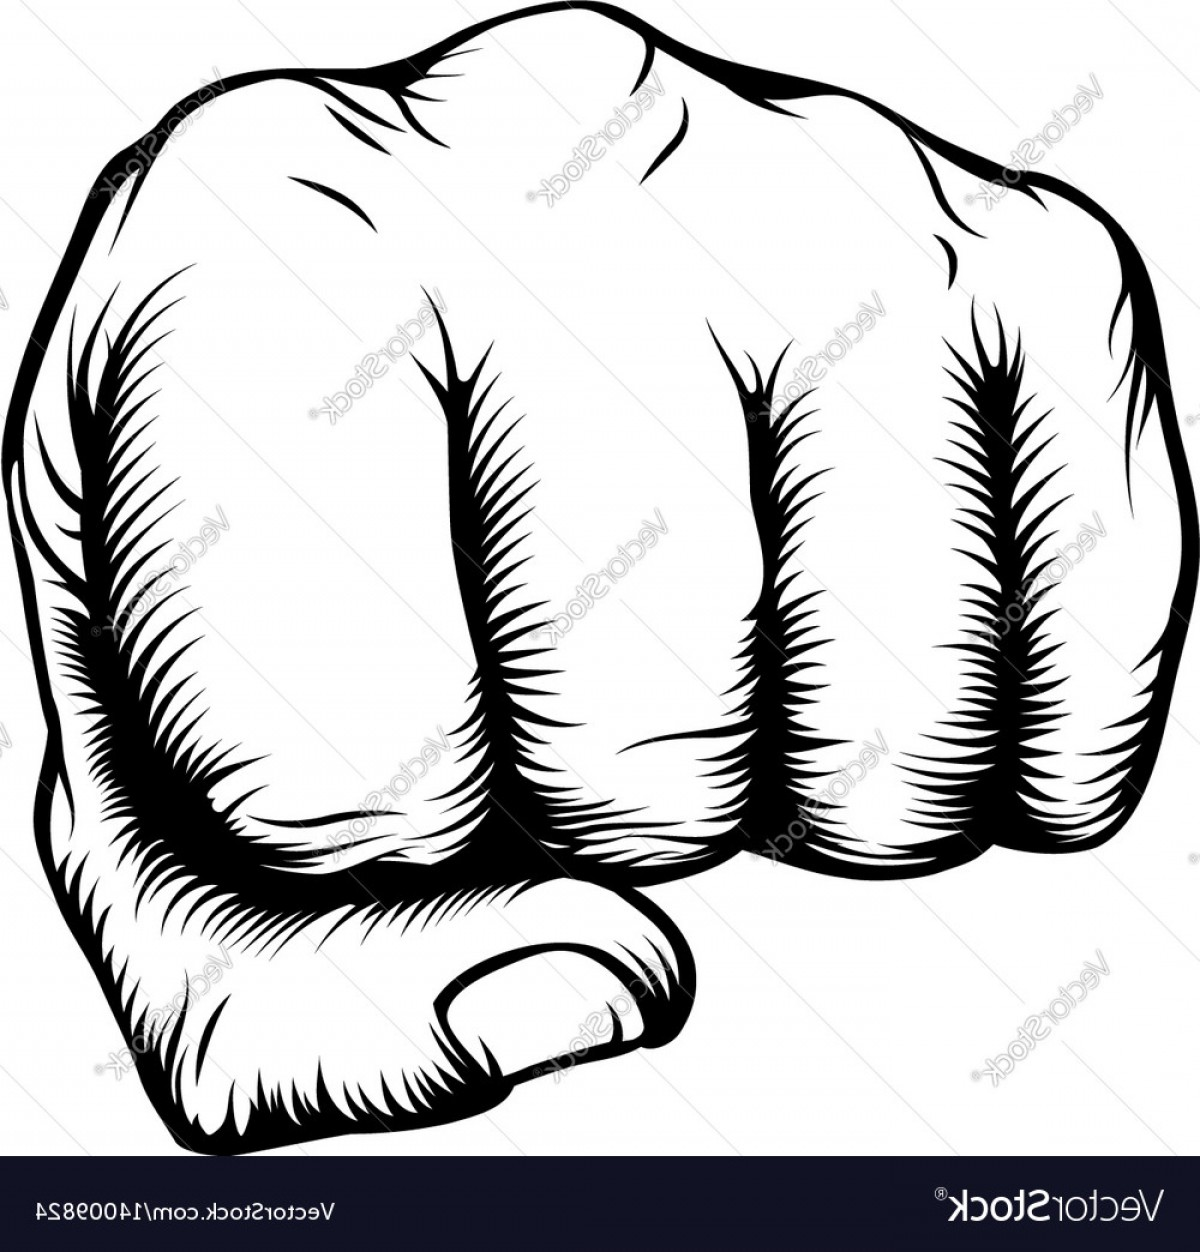 Hand Fist Vector: Hand In Fist Punching From Front Vector